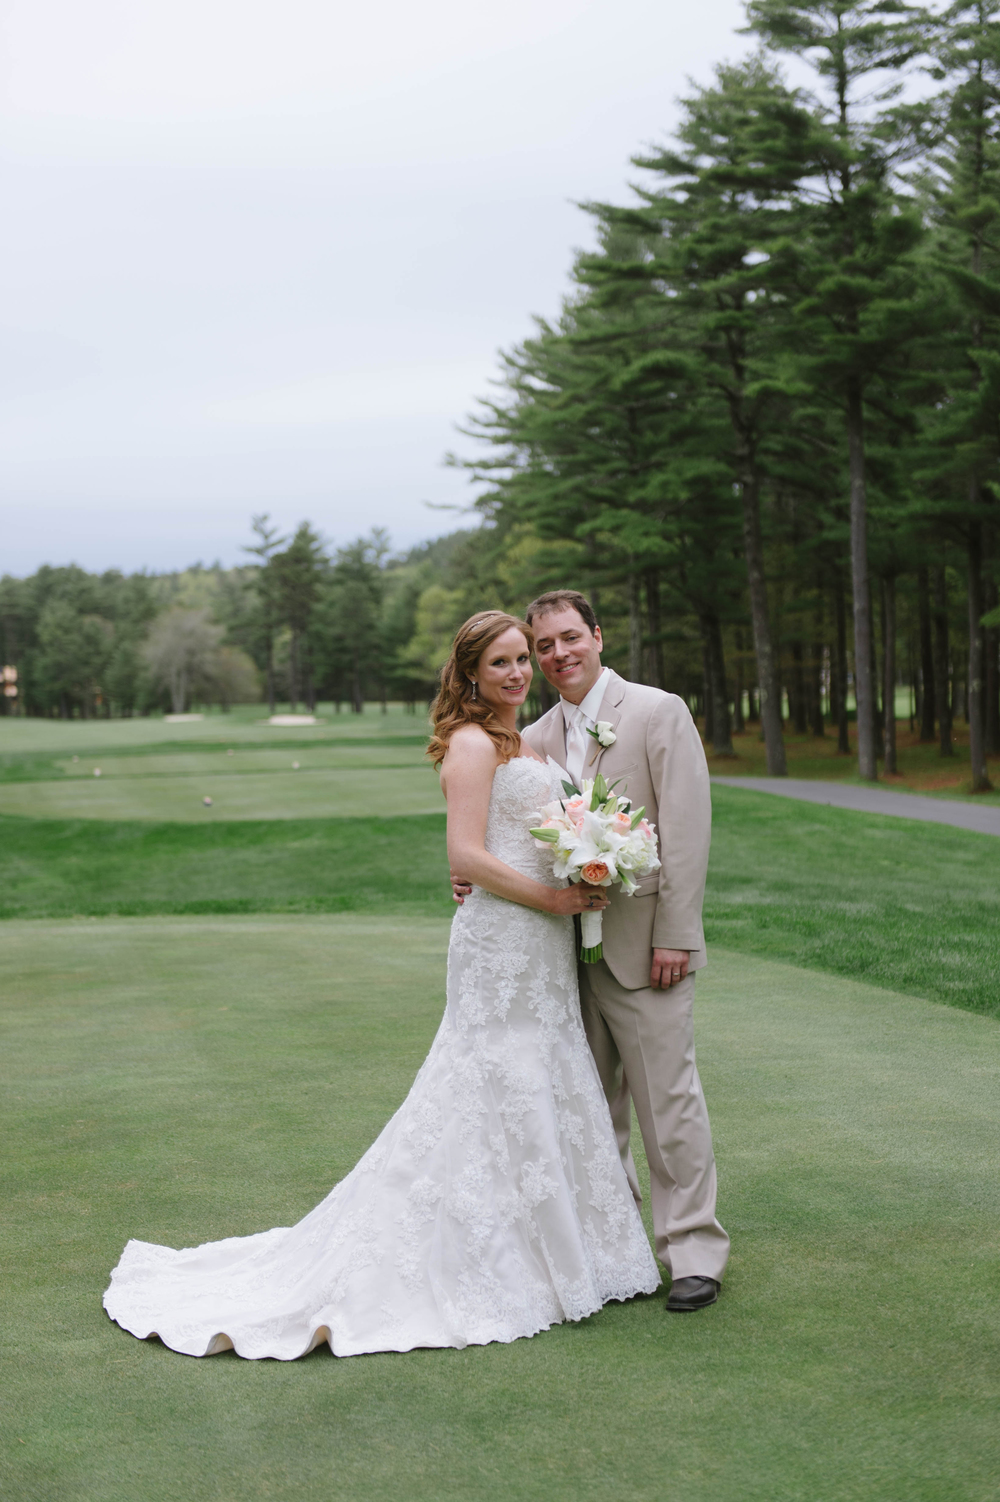 Pinehills_Wedding_Plymouth002.jpg